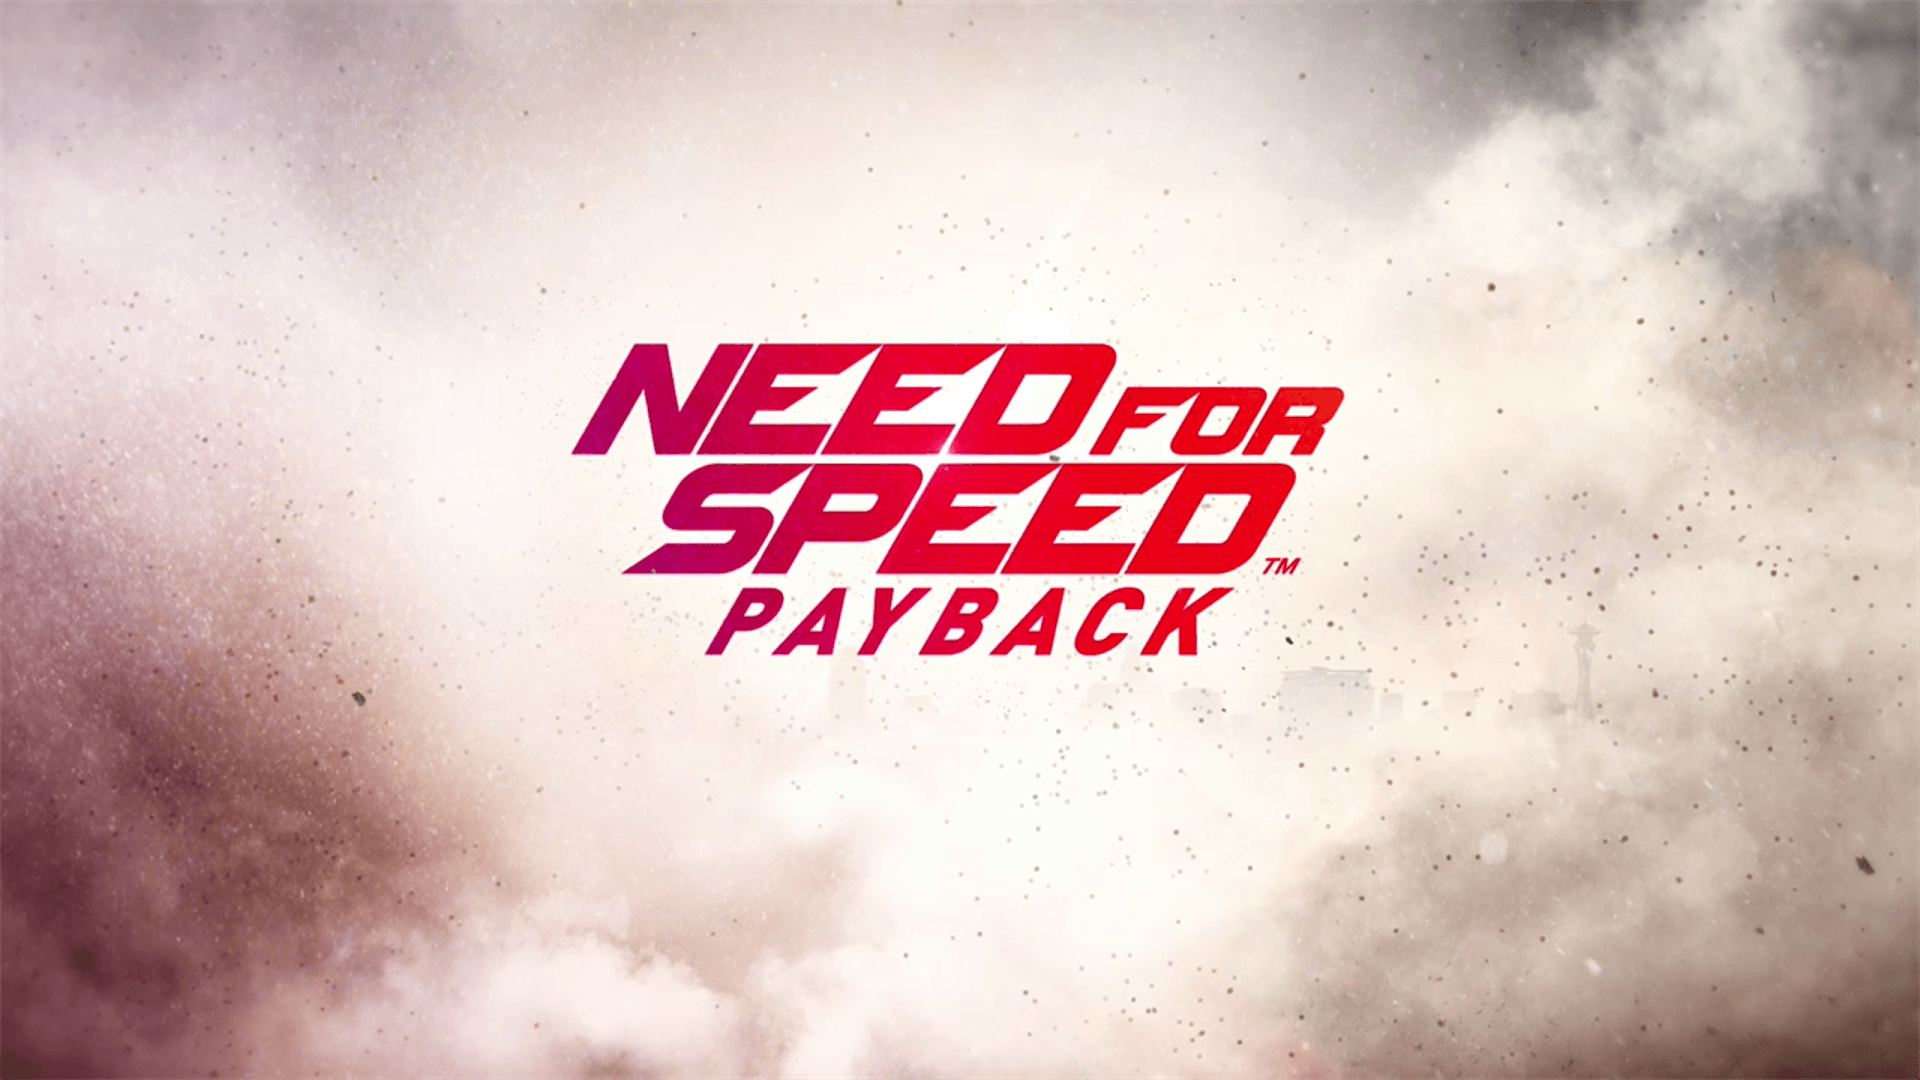 Need For Speed Payback Wallpaper: Need For Speed Payback Wallpapers